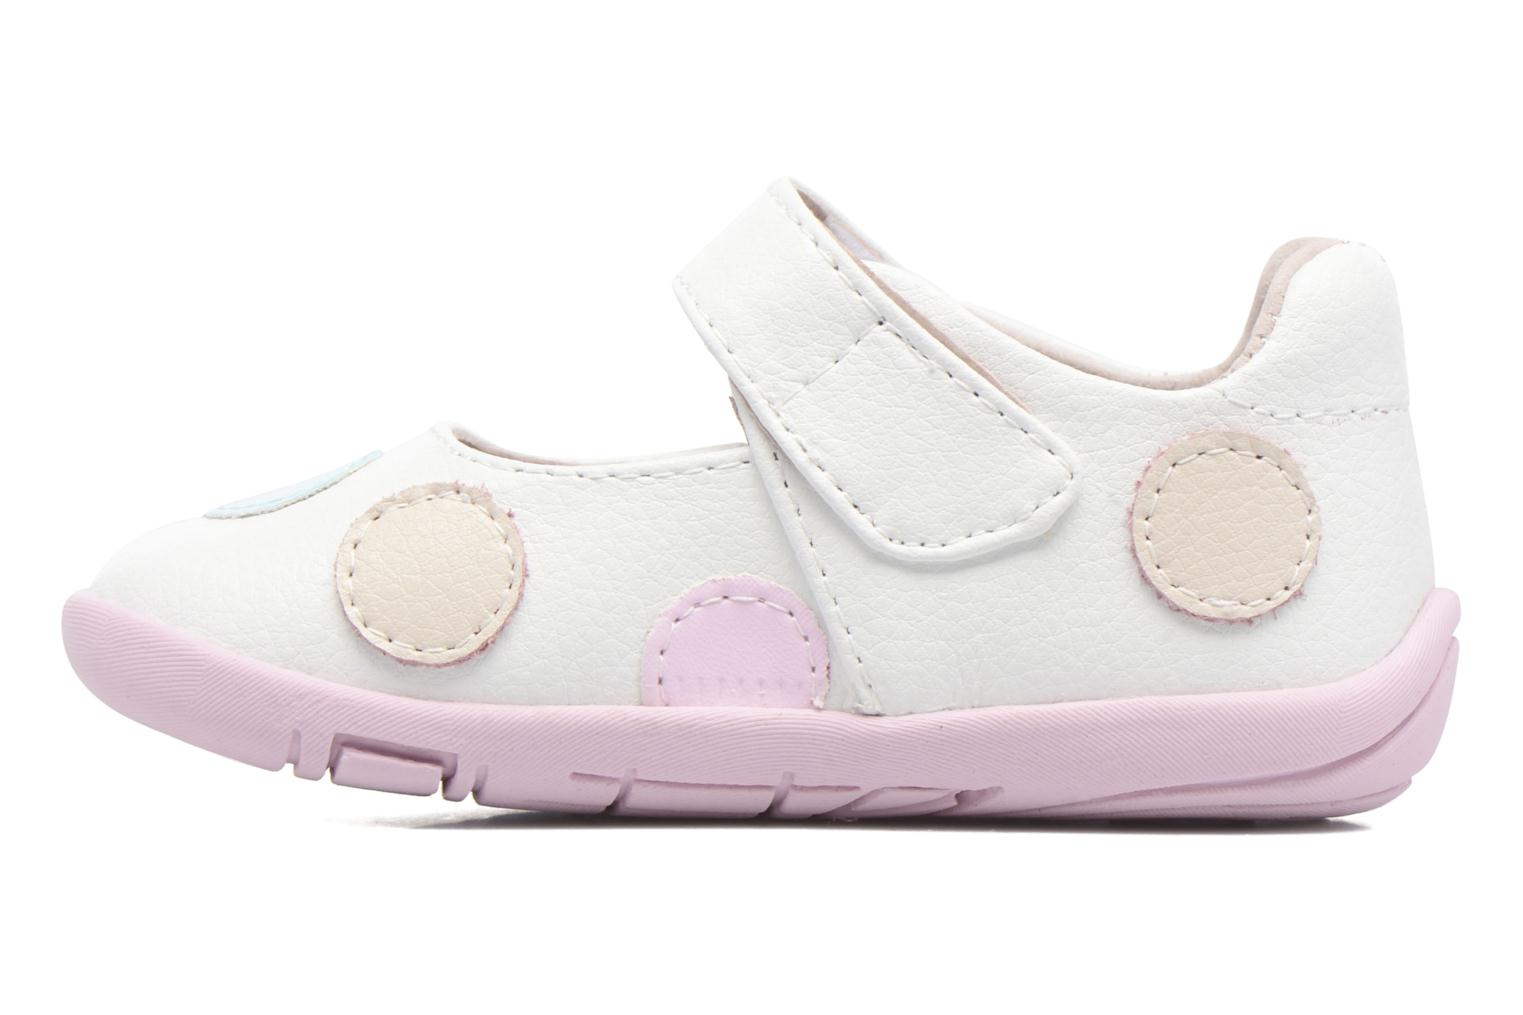 Ballerine Pediped Giselle1 Bianco immagine frontale